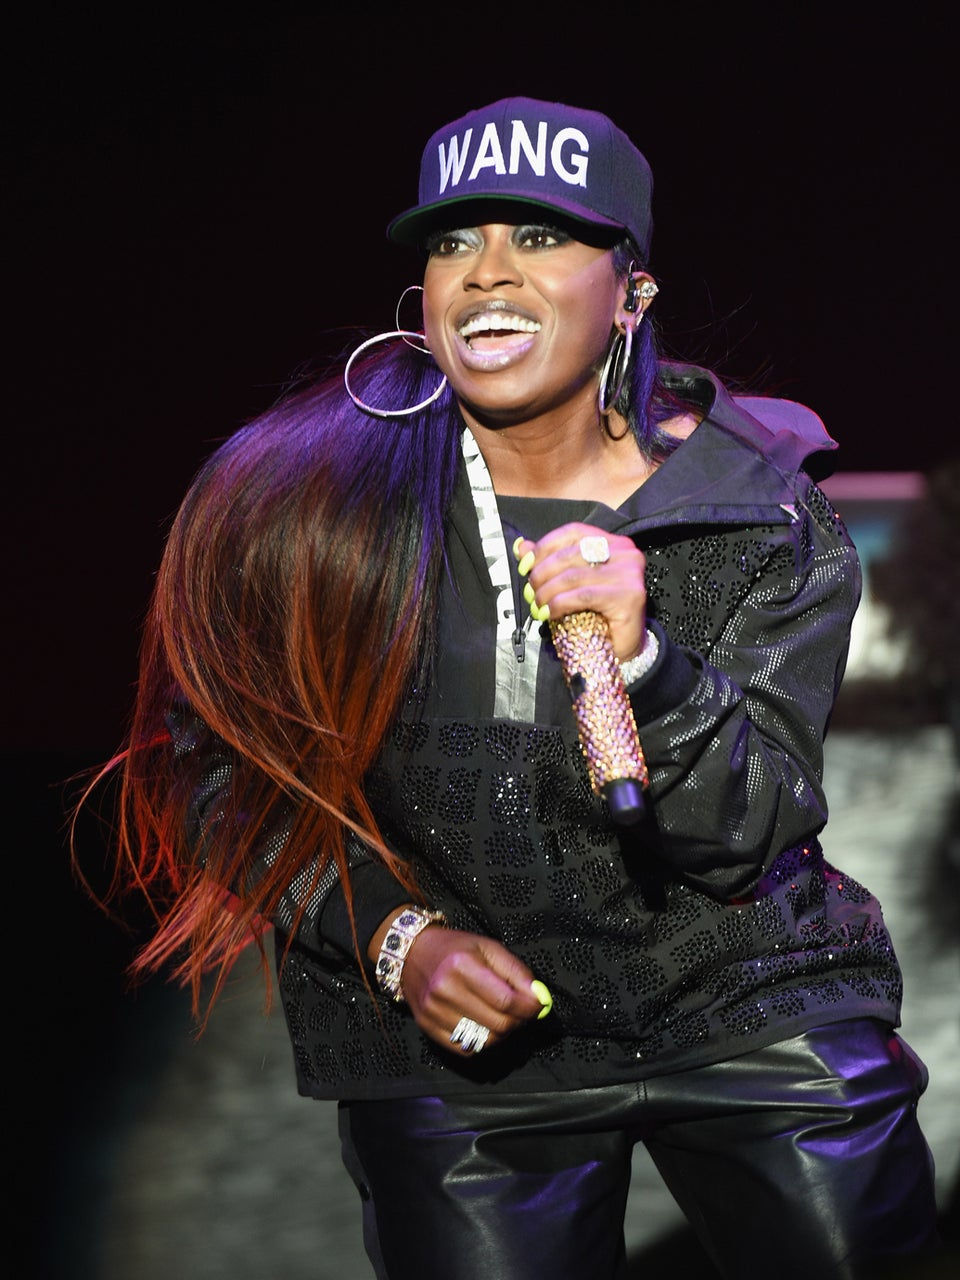 Missy Elliott Shows Her Support For Janet Jackson Amid Divorce Drama: 'Keep Slaying'